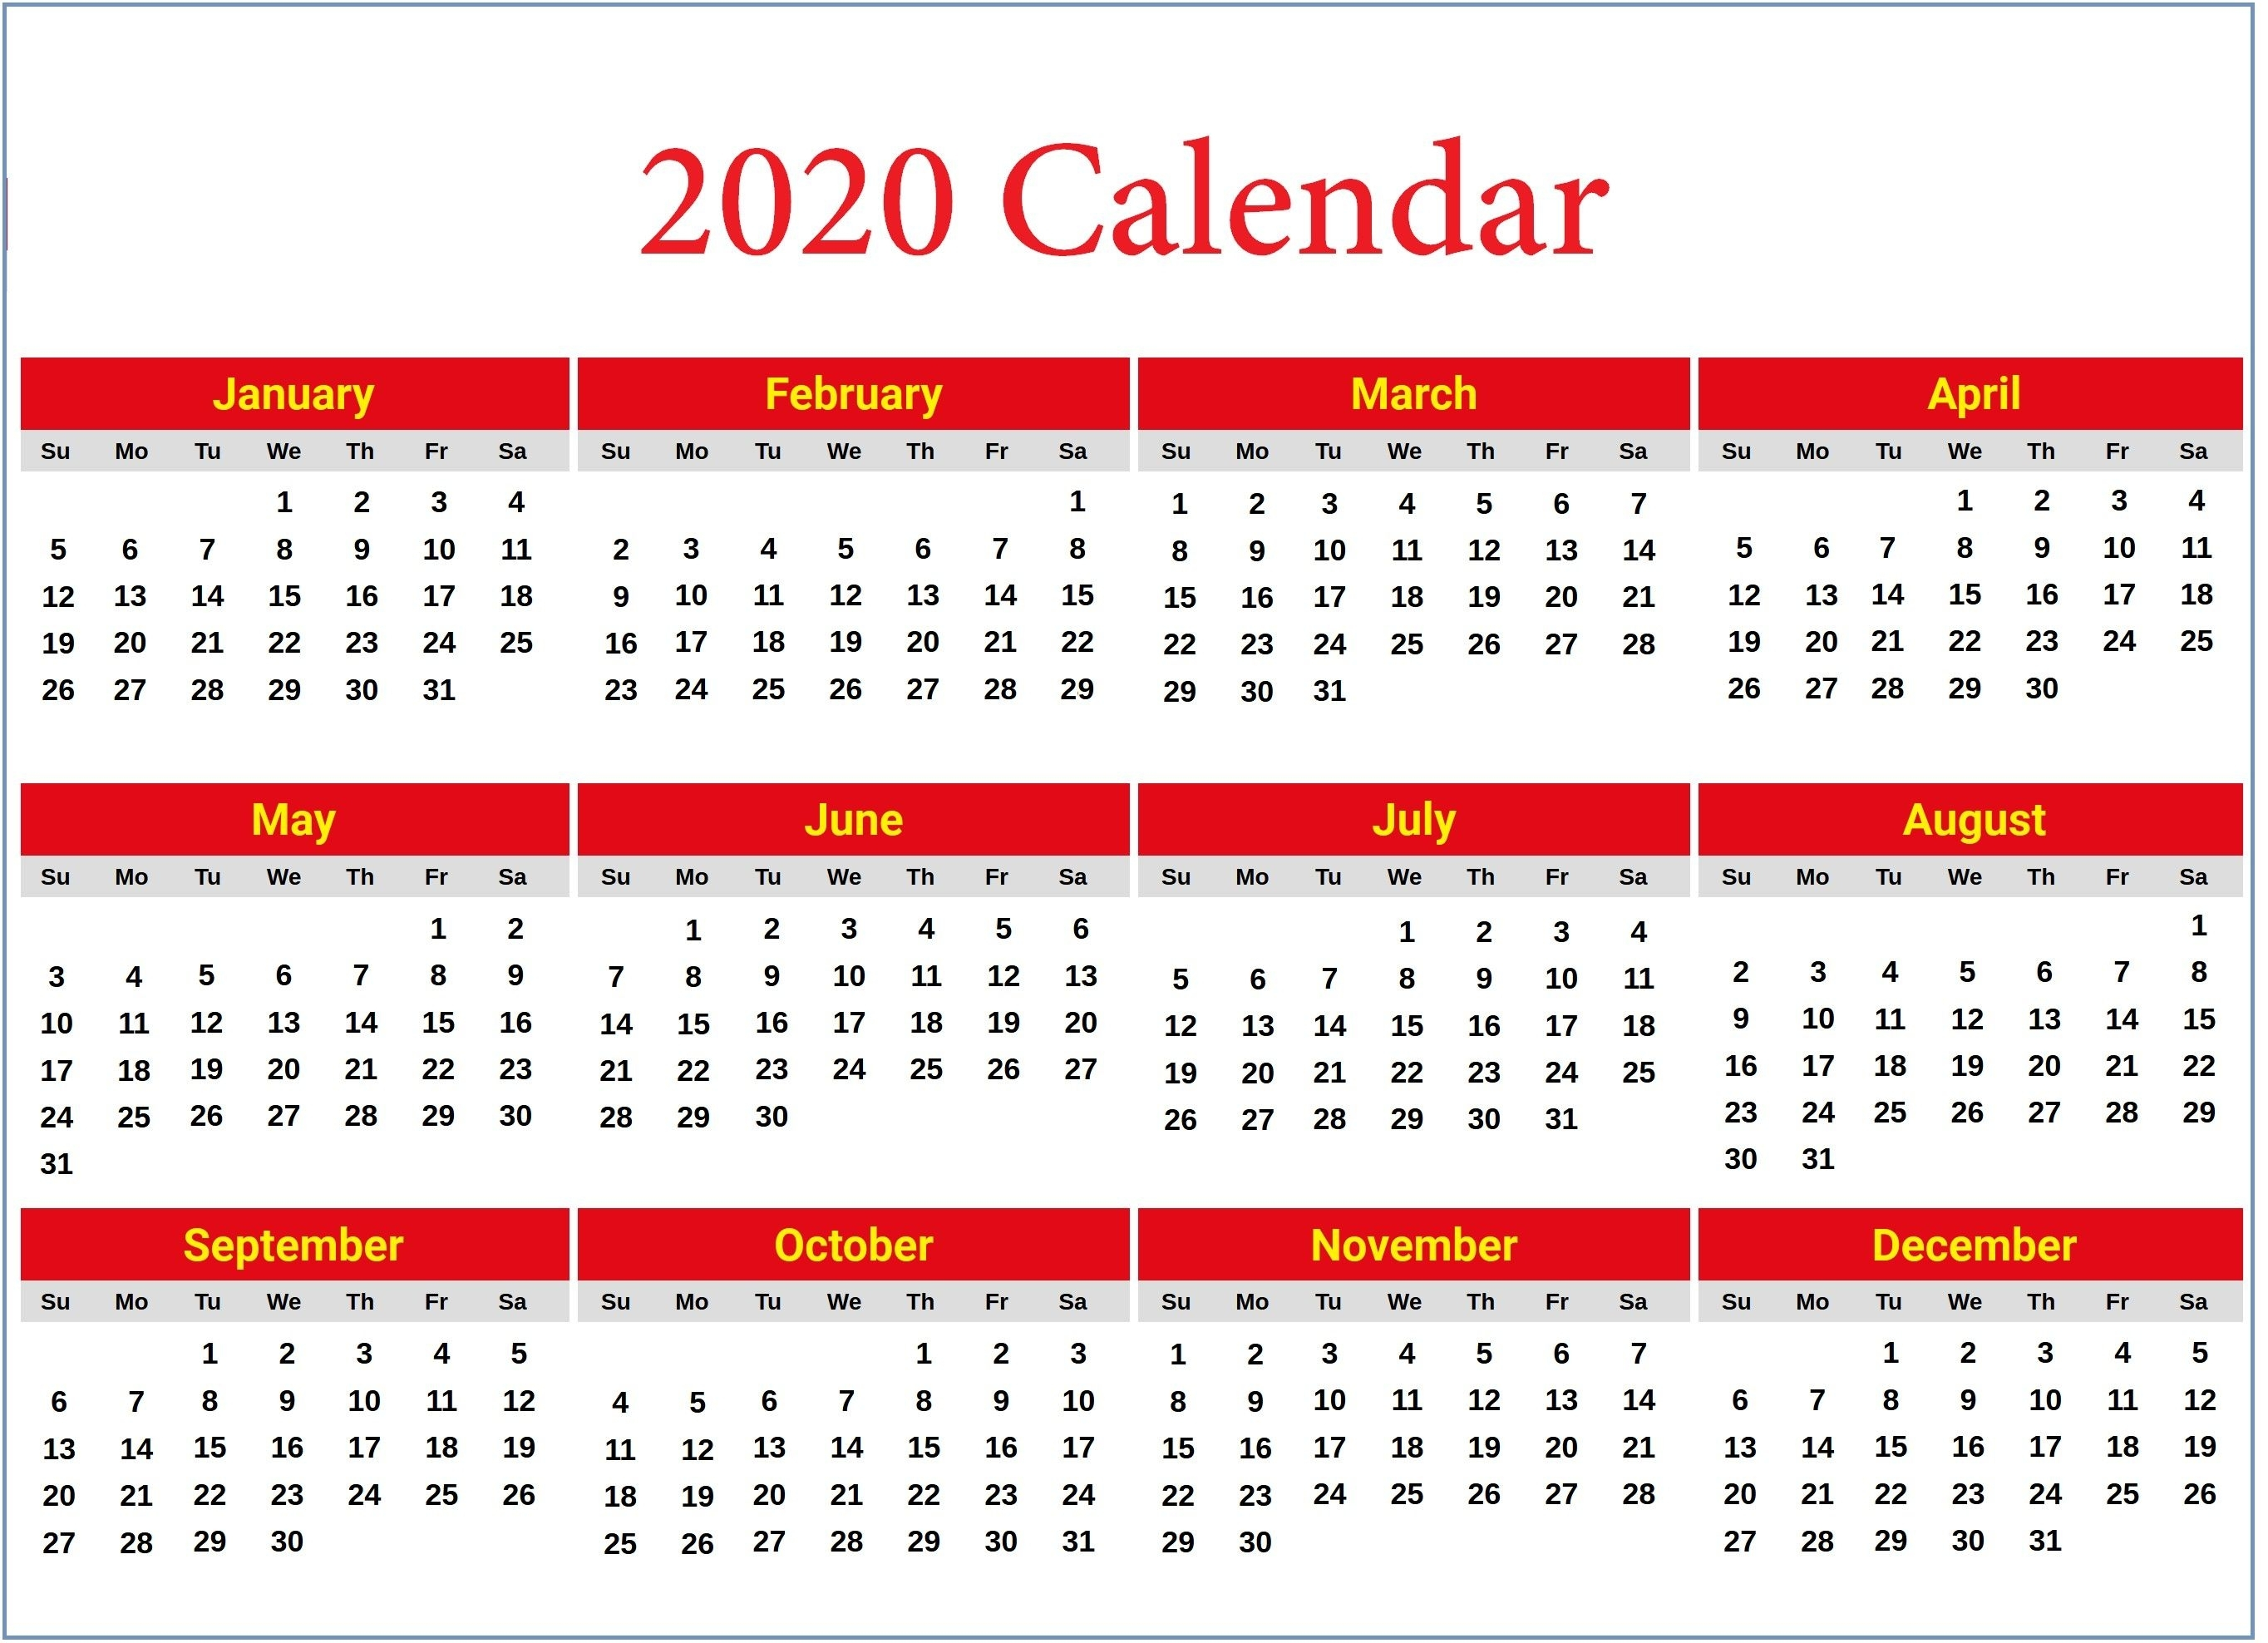 2020 Calendar 2020 Printable Calendar Download Free Blank